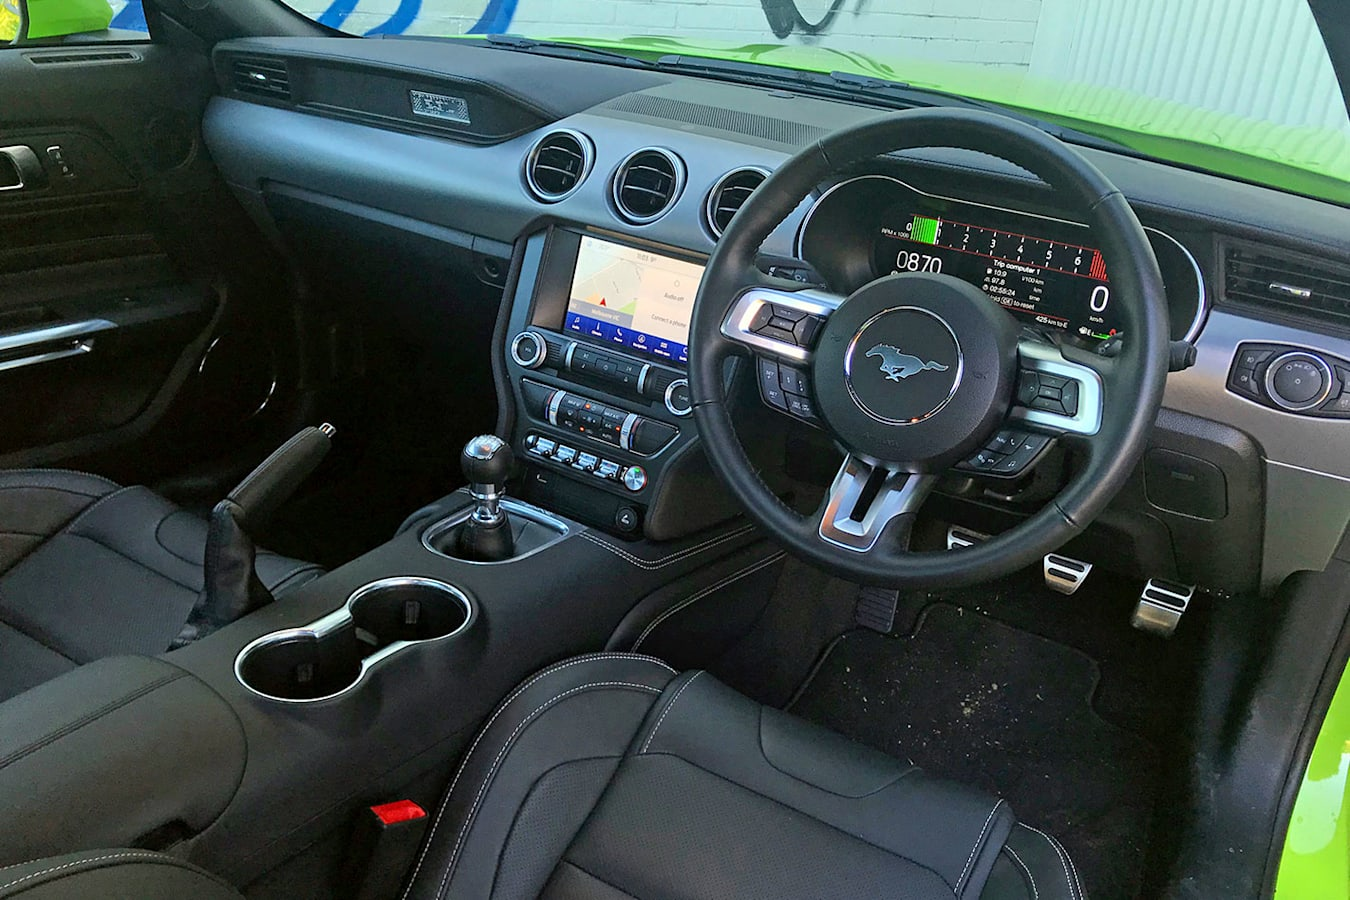 Ford Mustang interior with optional Recaro seats